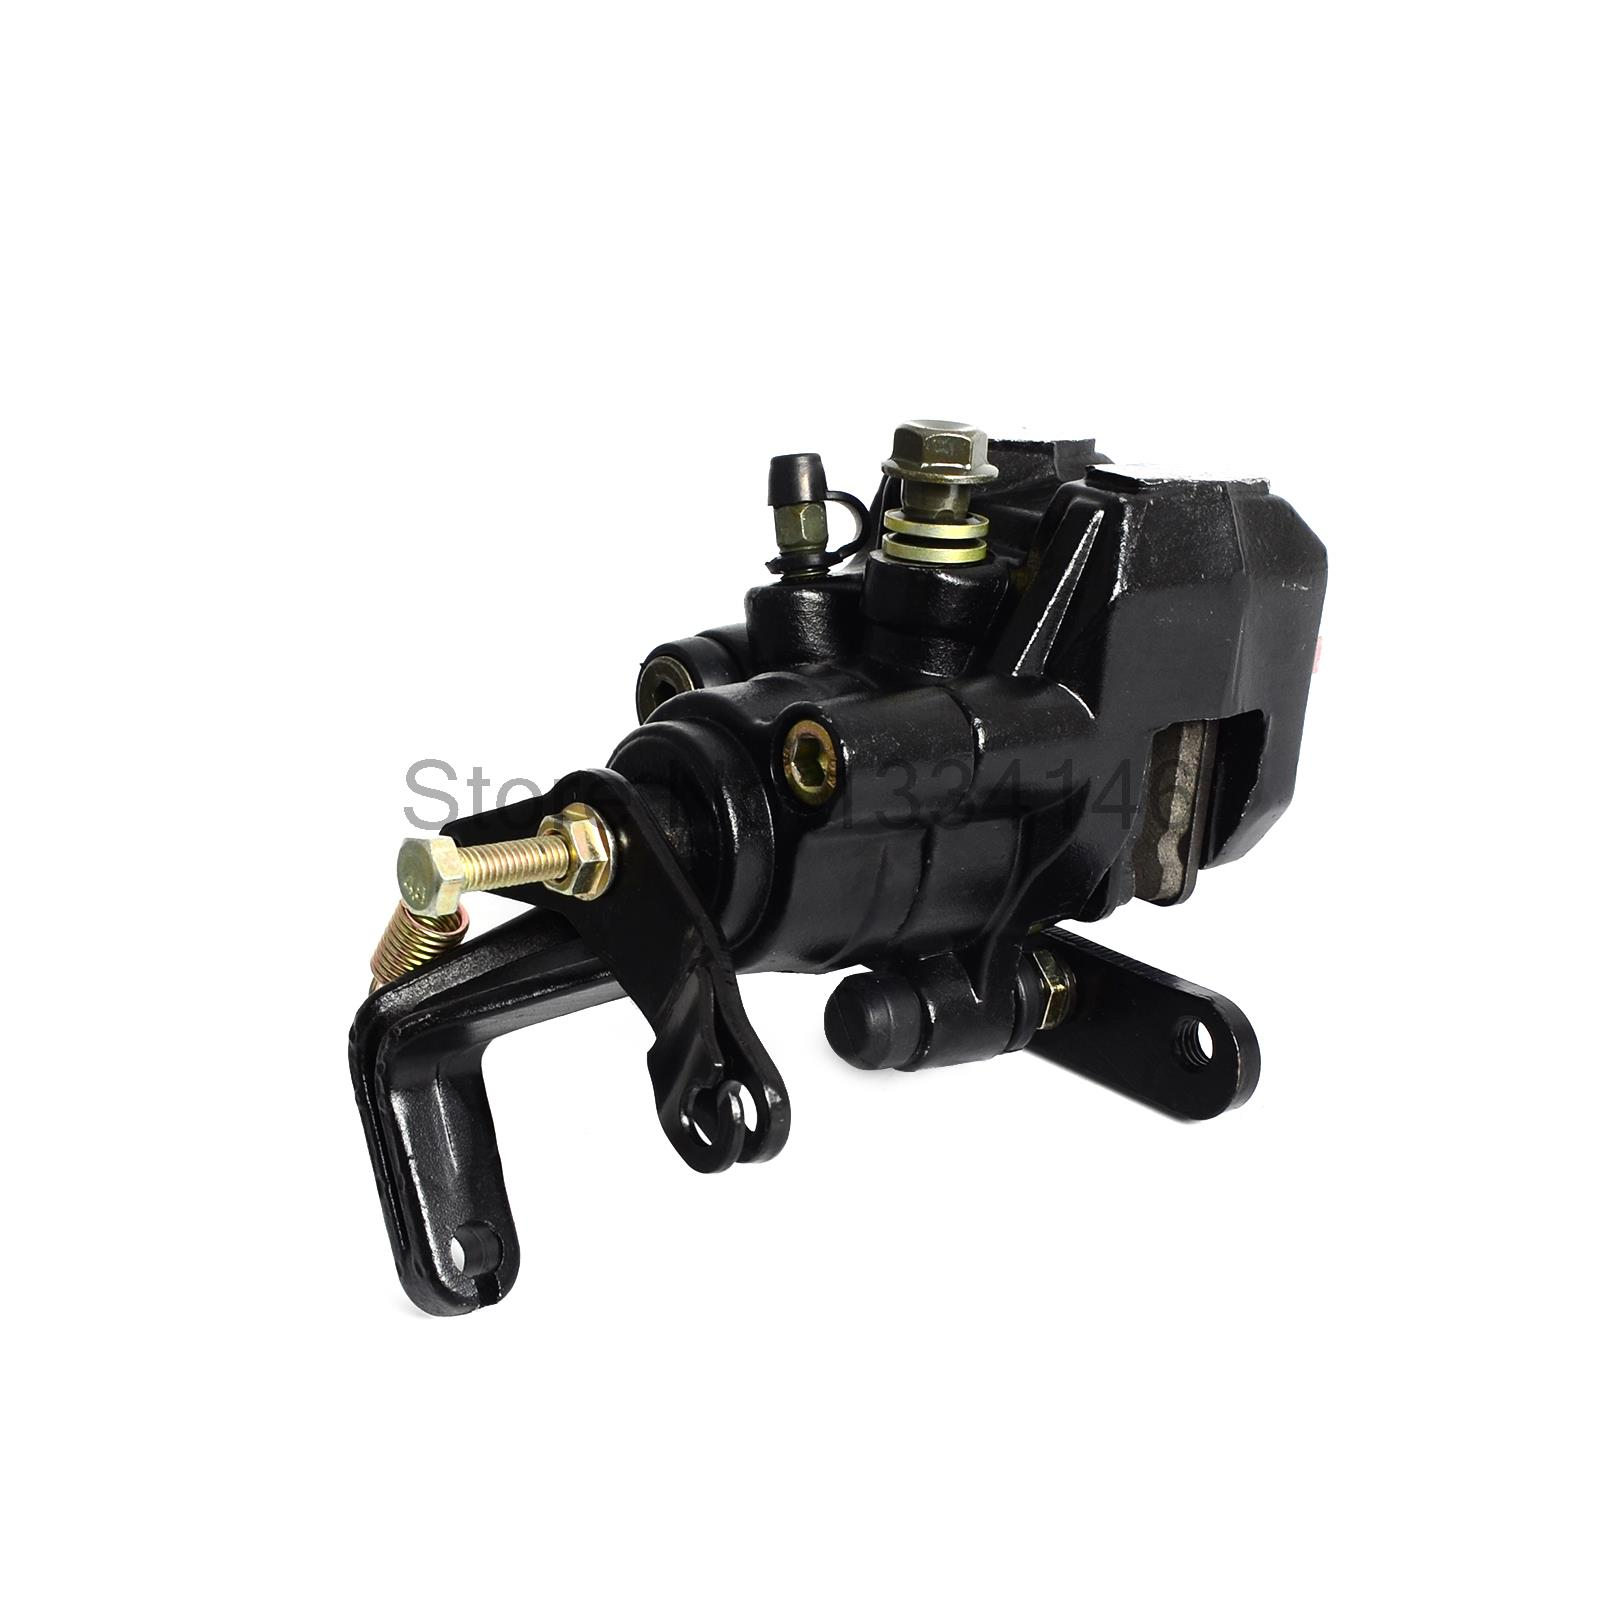 FOR YAMAHA ATV 1995-2005 WOLVERINE YFM350 Rear brake caliper Assembly 1UY-2580W-00-00<br>